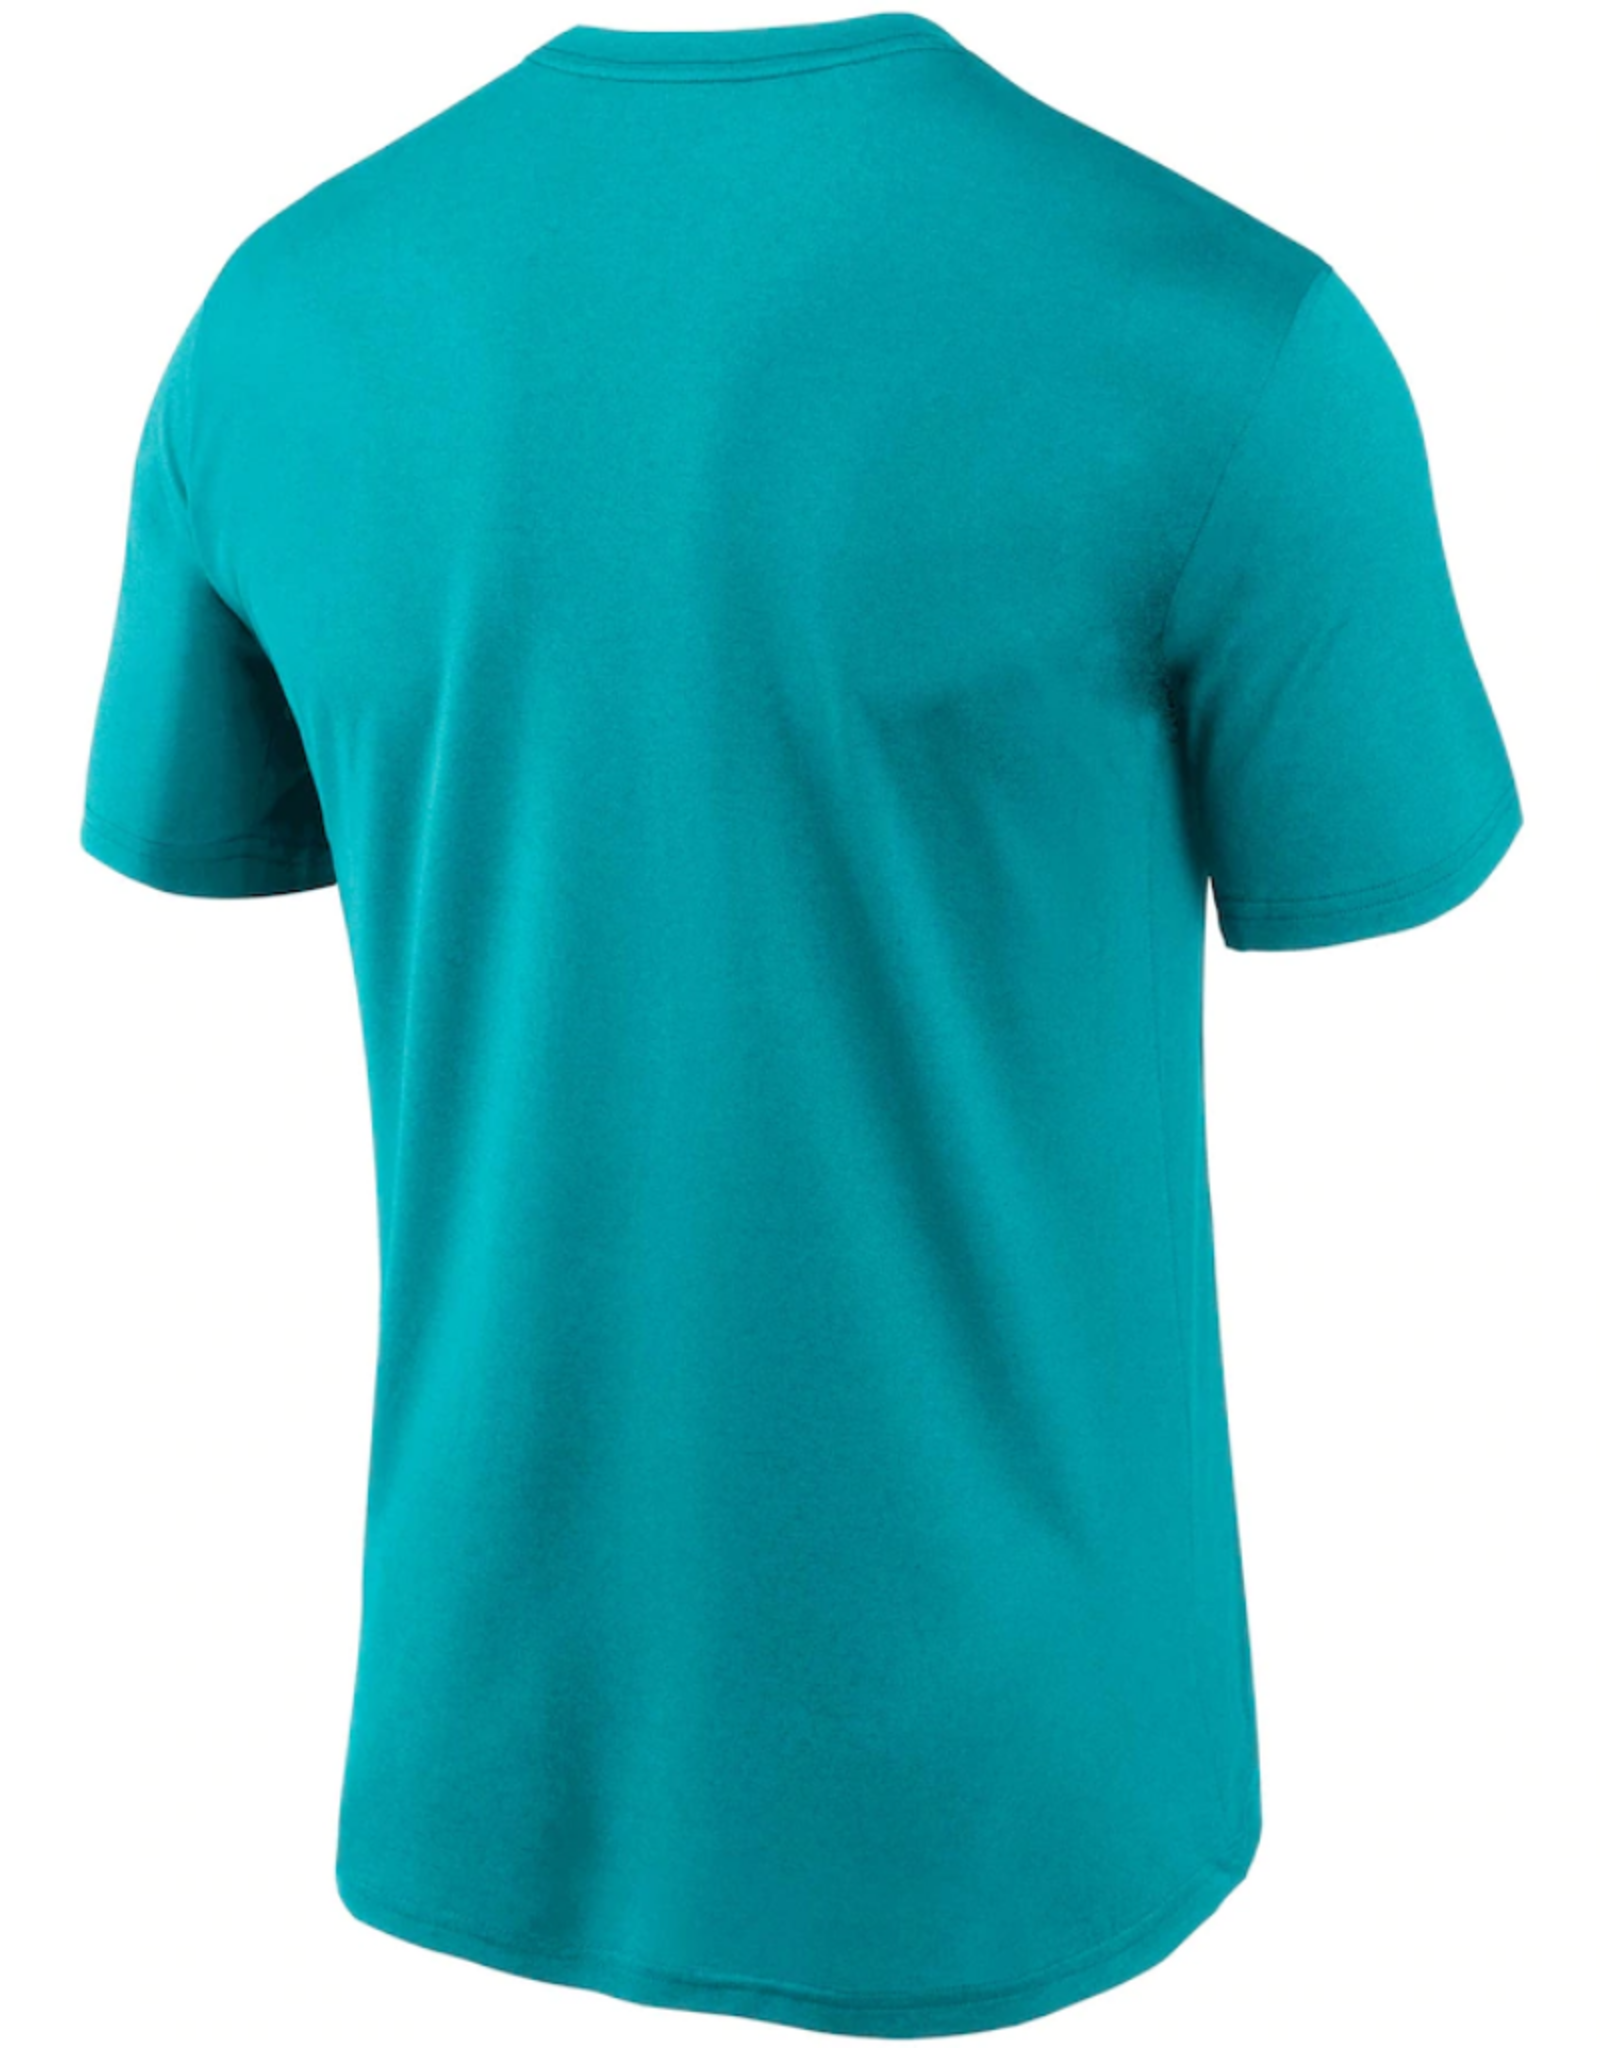 Nike Men's Broadcast T-shirt Miami Dolphins Teal